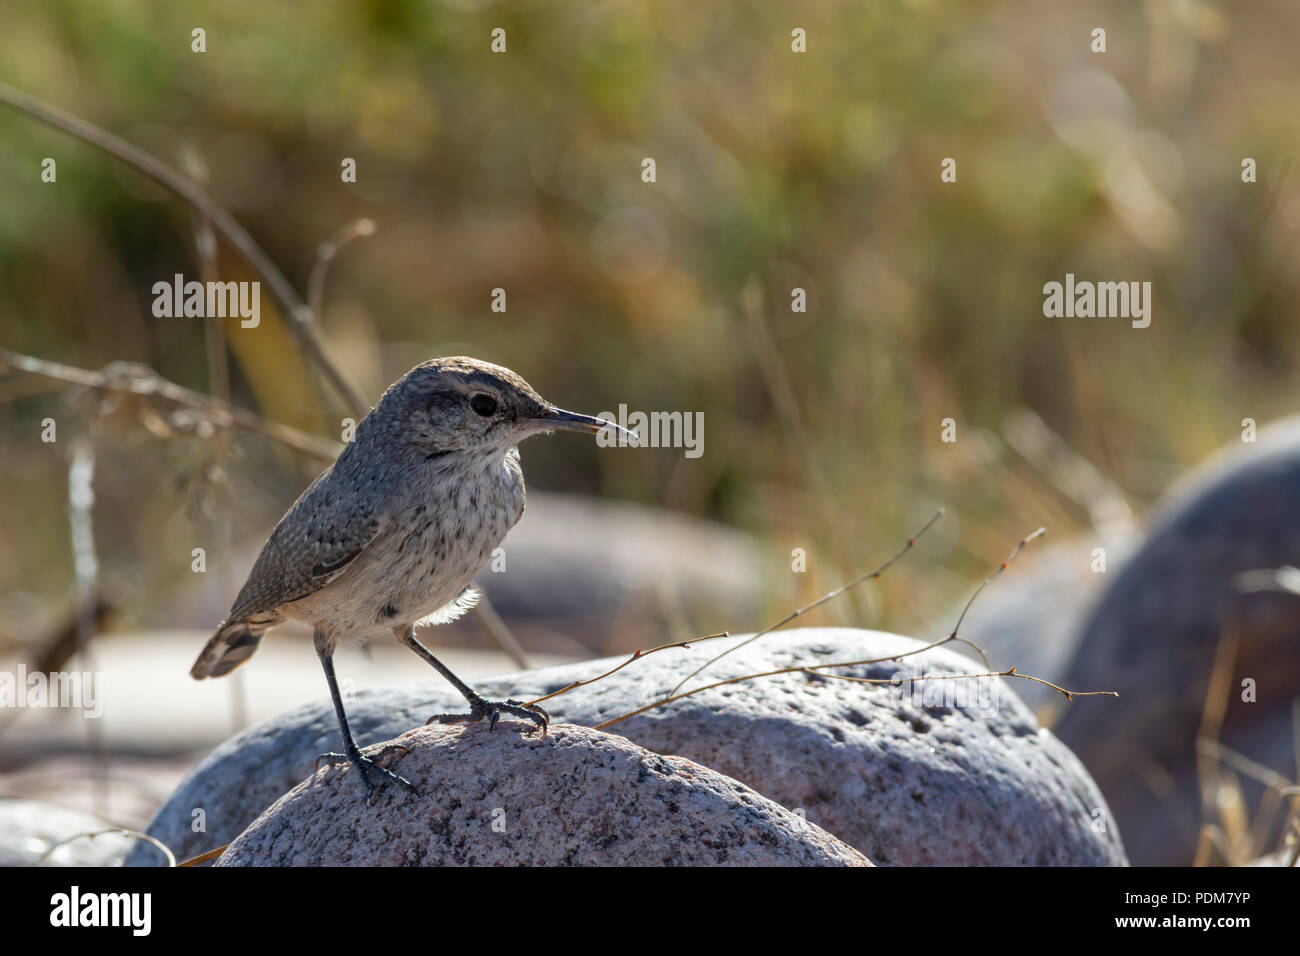 Rock Wren, Pawnee Buttes National Grassland, Colorado US. Photo taken in September. - Stock Image